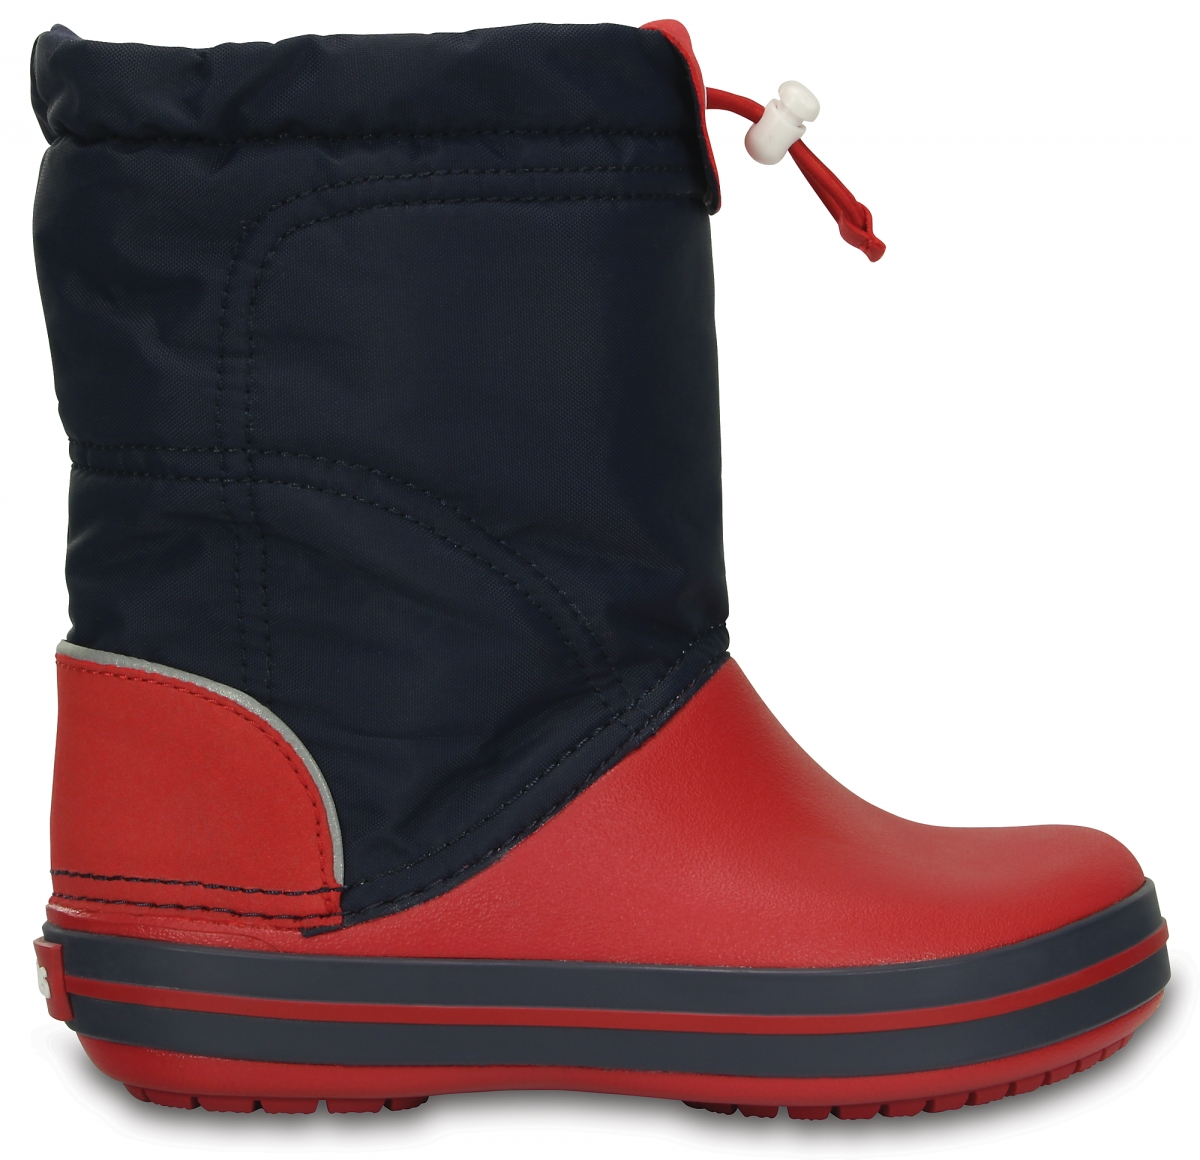 Crocs Crocband LodgePoint Boot Kids - Navy/Red, J3 (34-35)